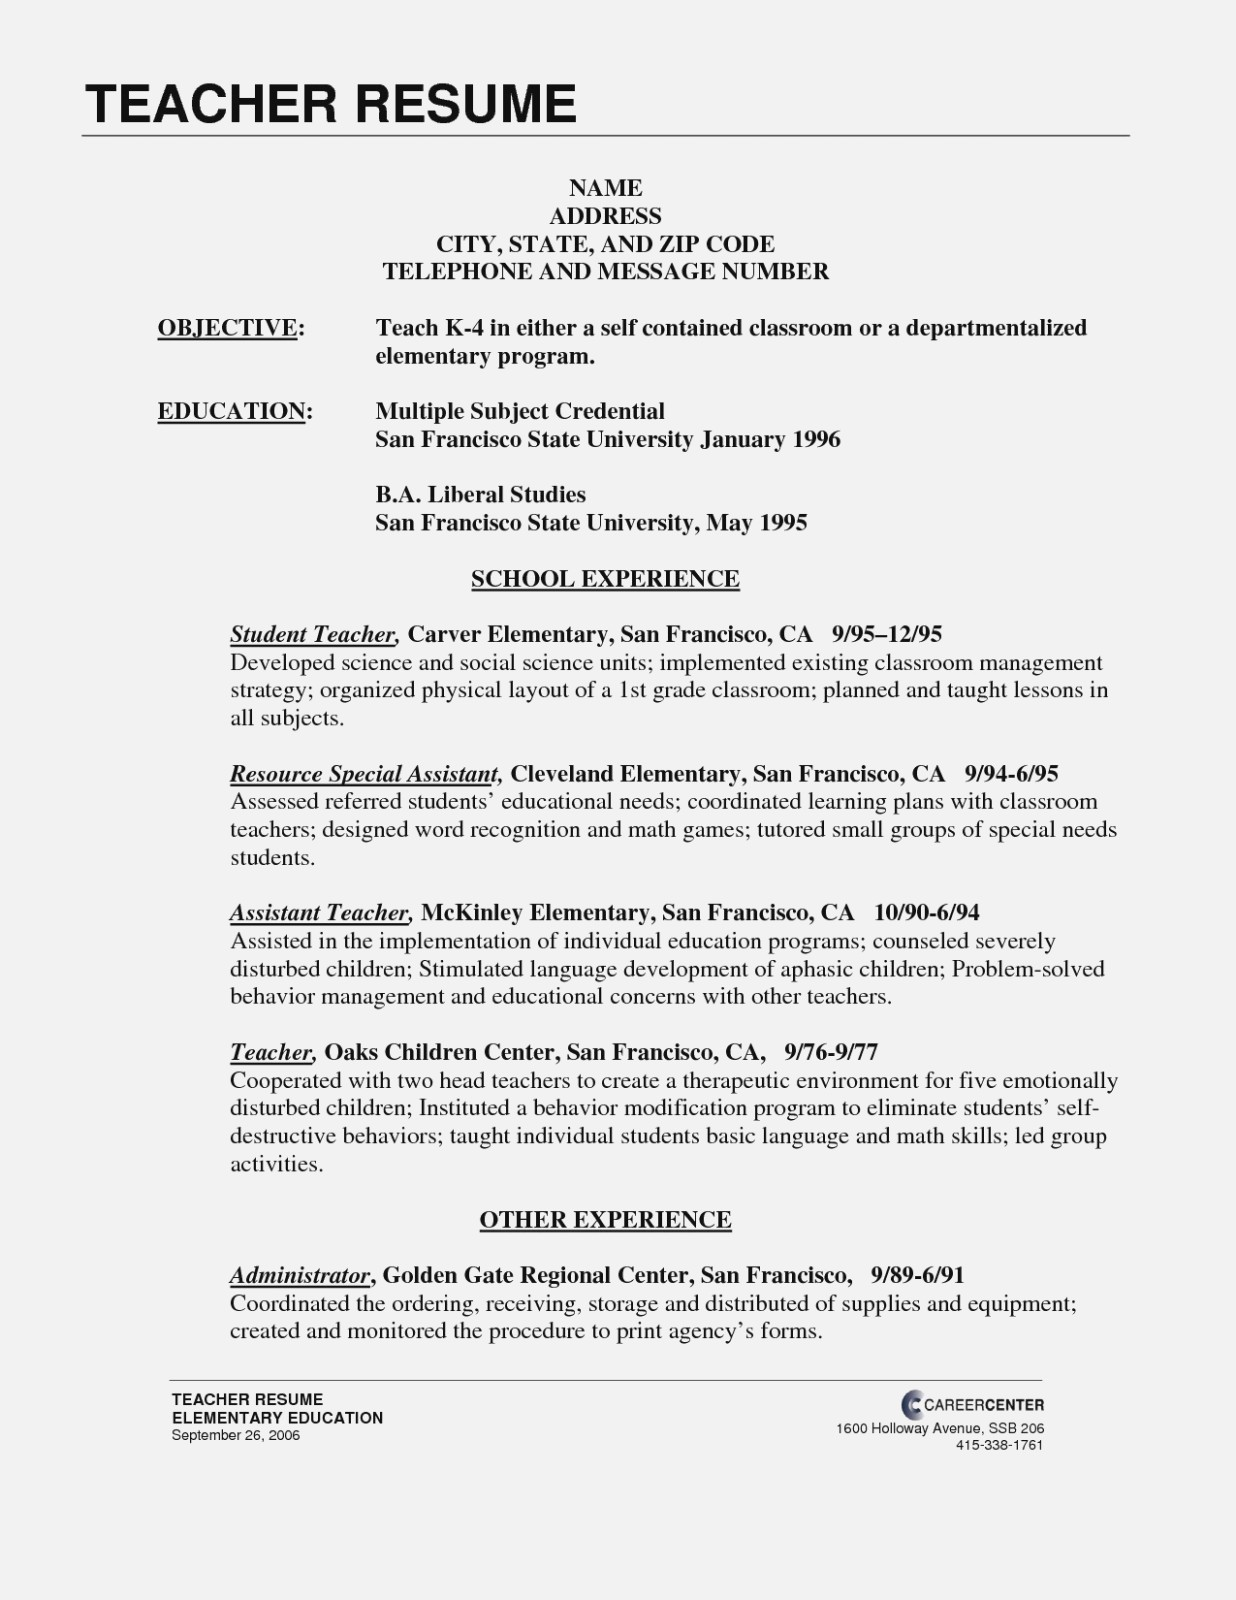 yoga instructor resume template  14 Ingenious Ways You Can | Realty Executives Mi : Invoice ..